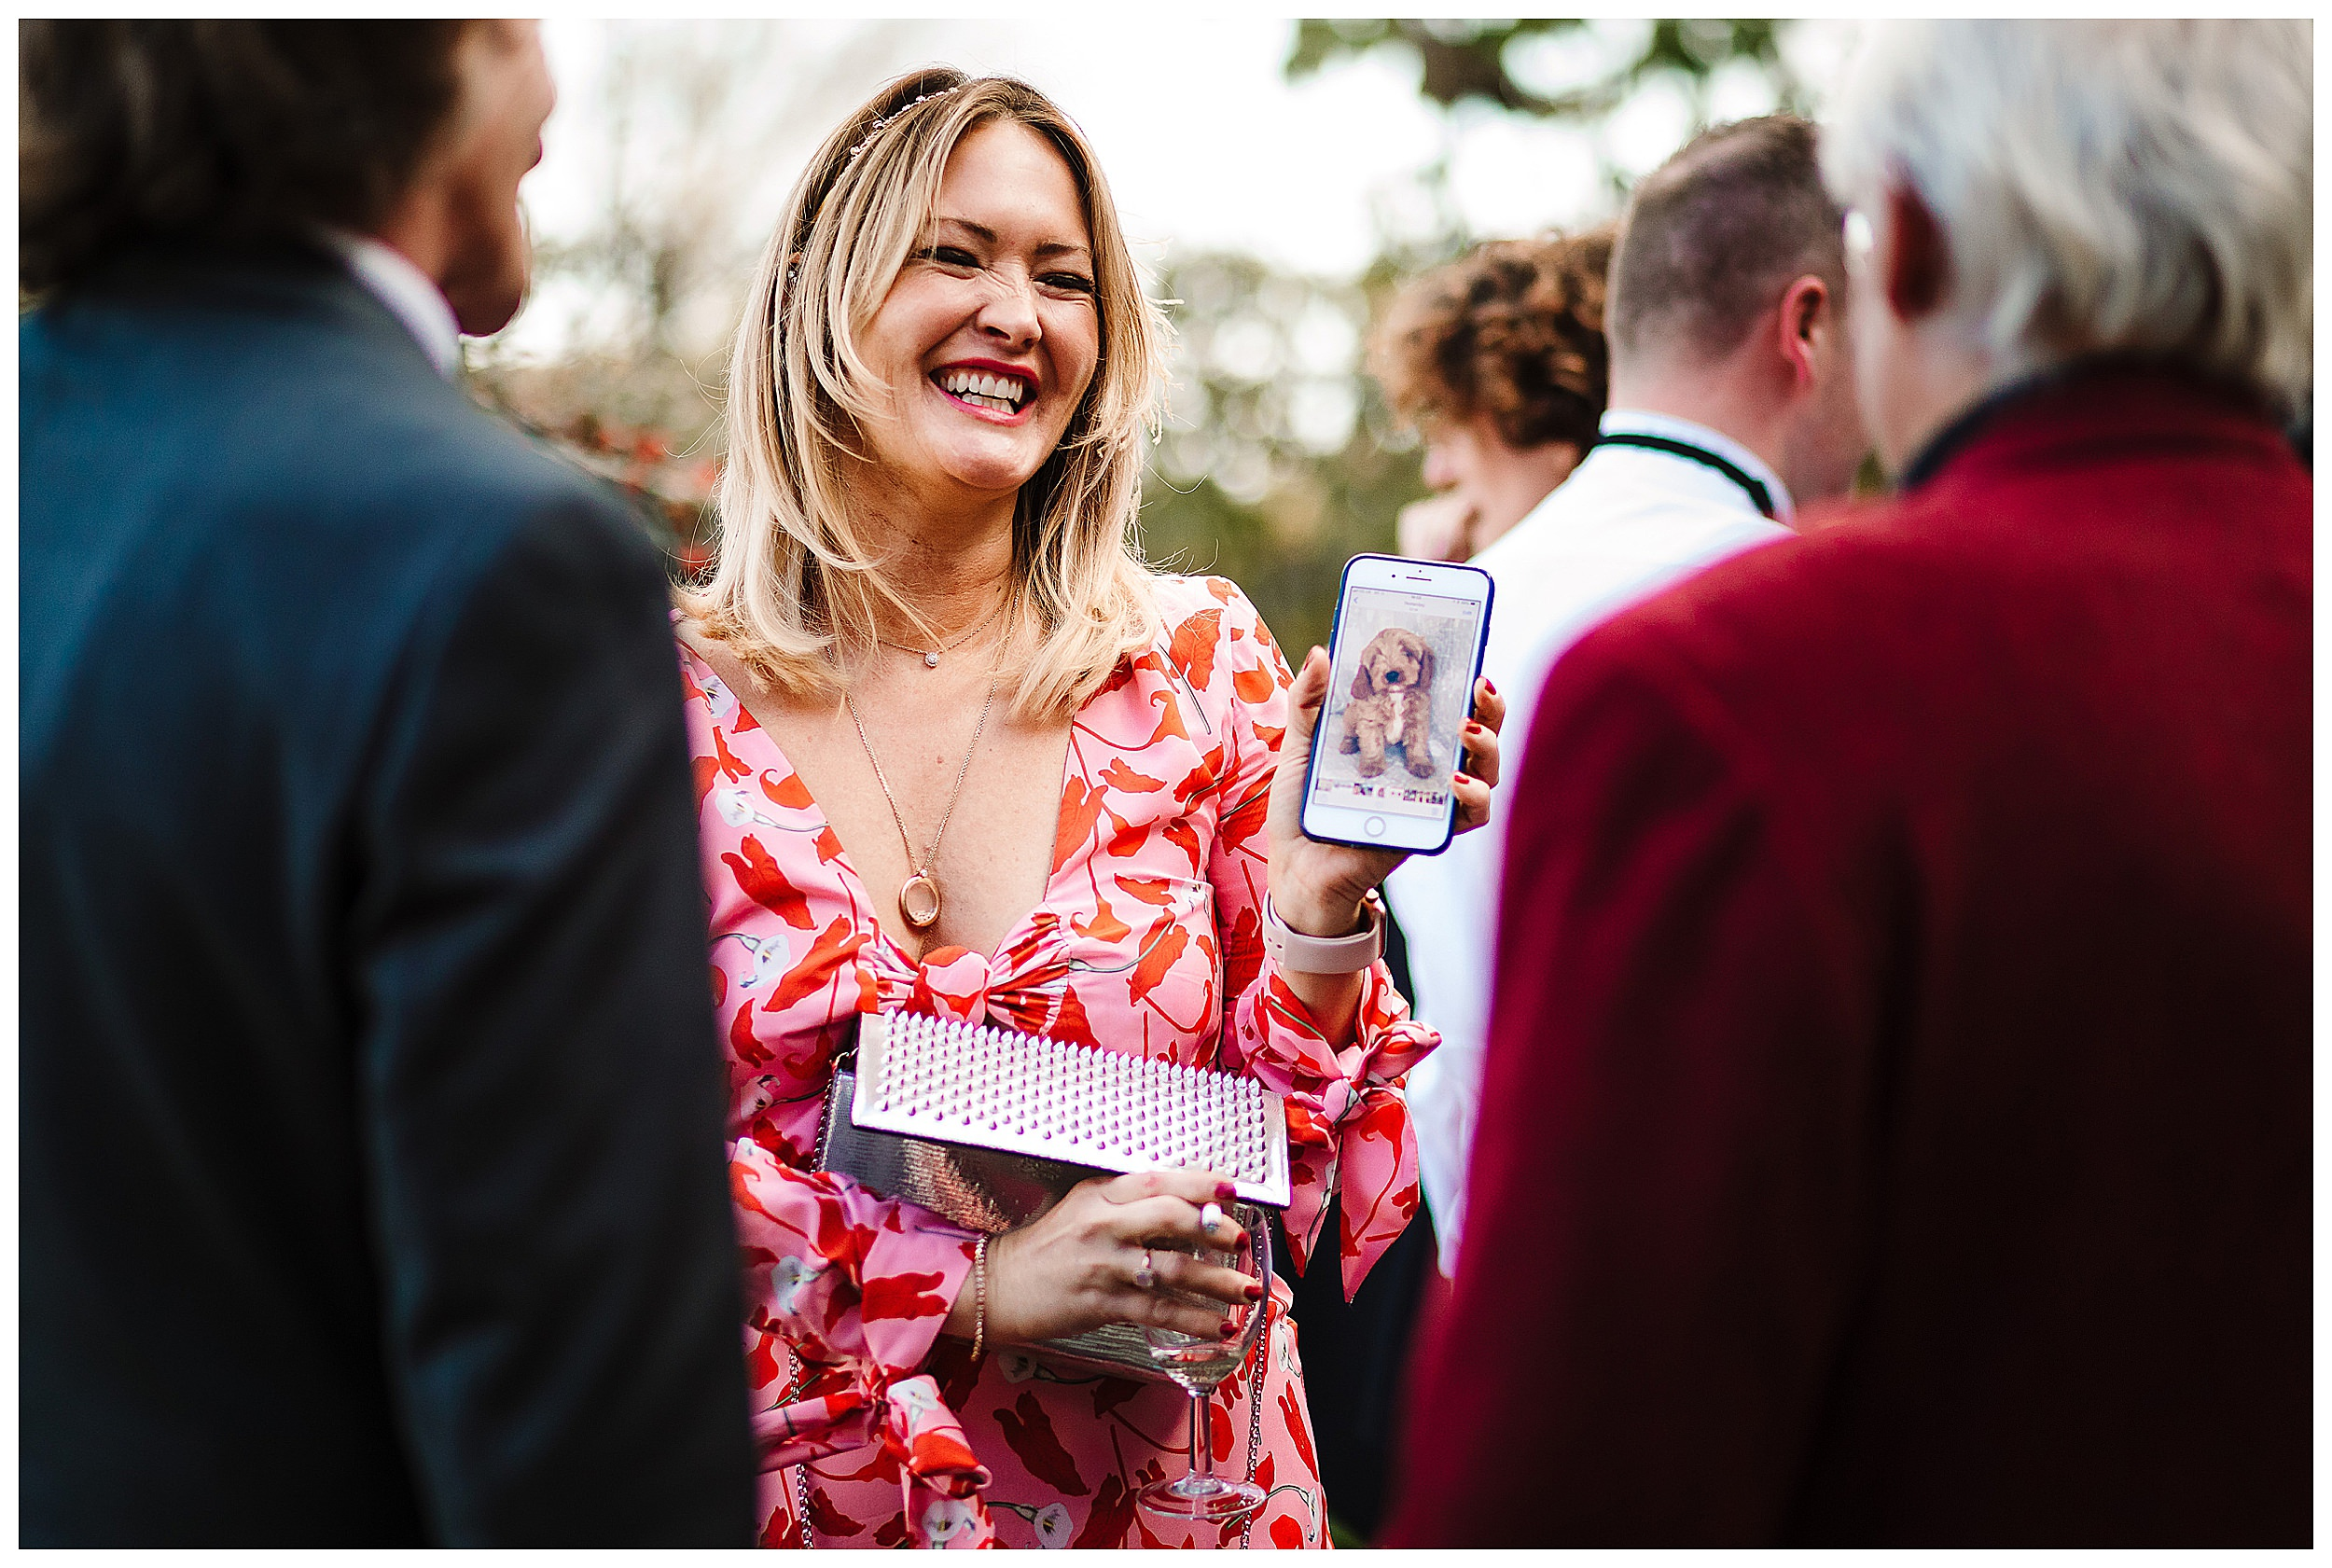 A laughing woman showing friends a photo of her puppy at a wedding